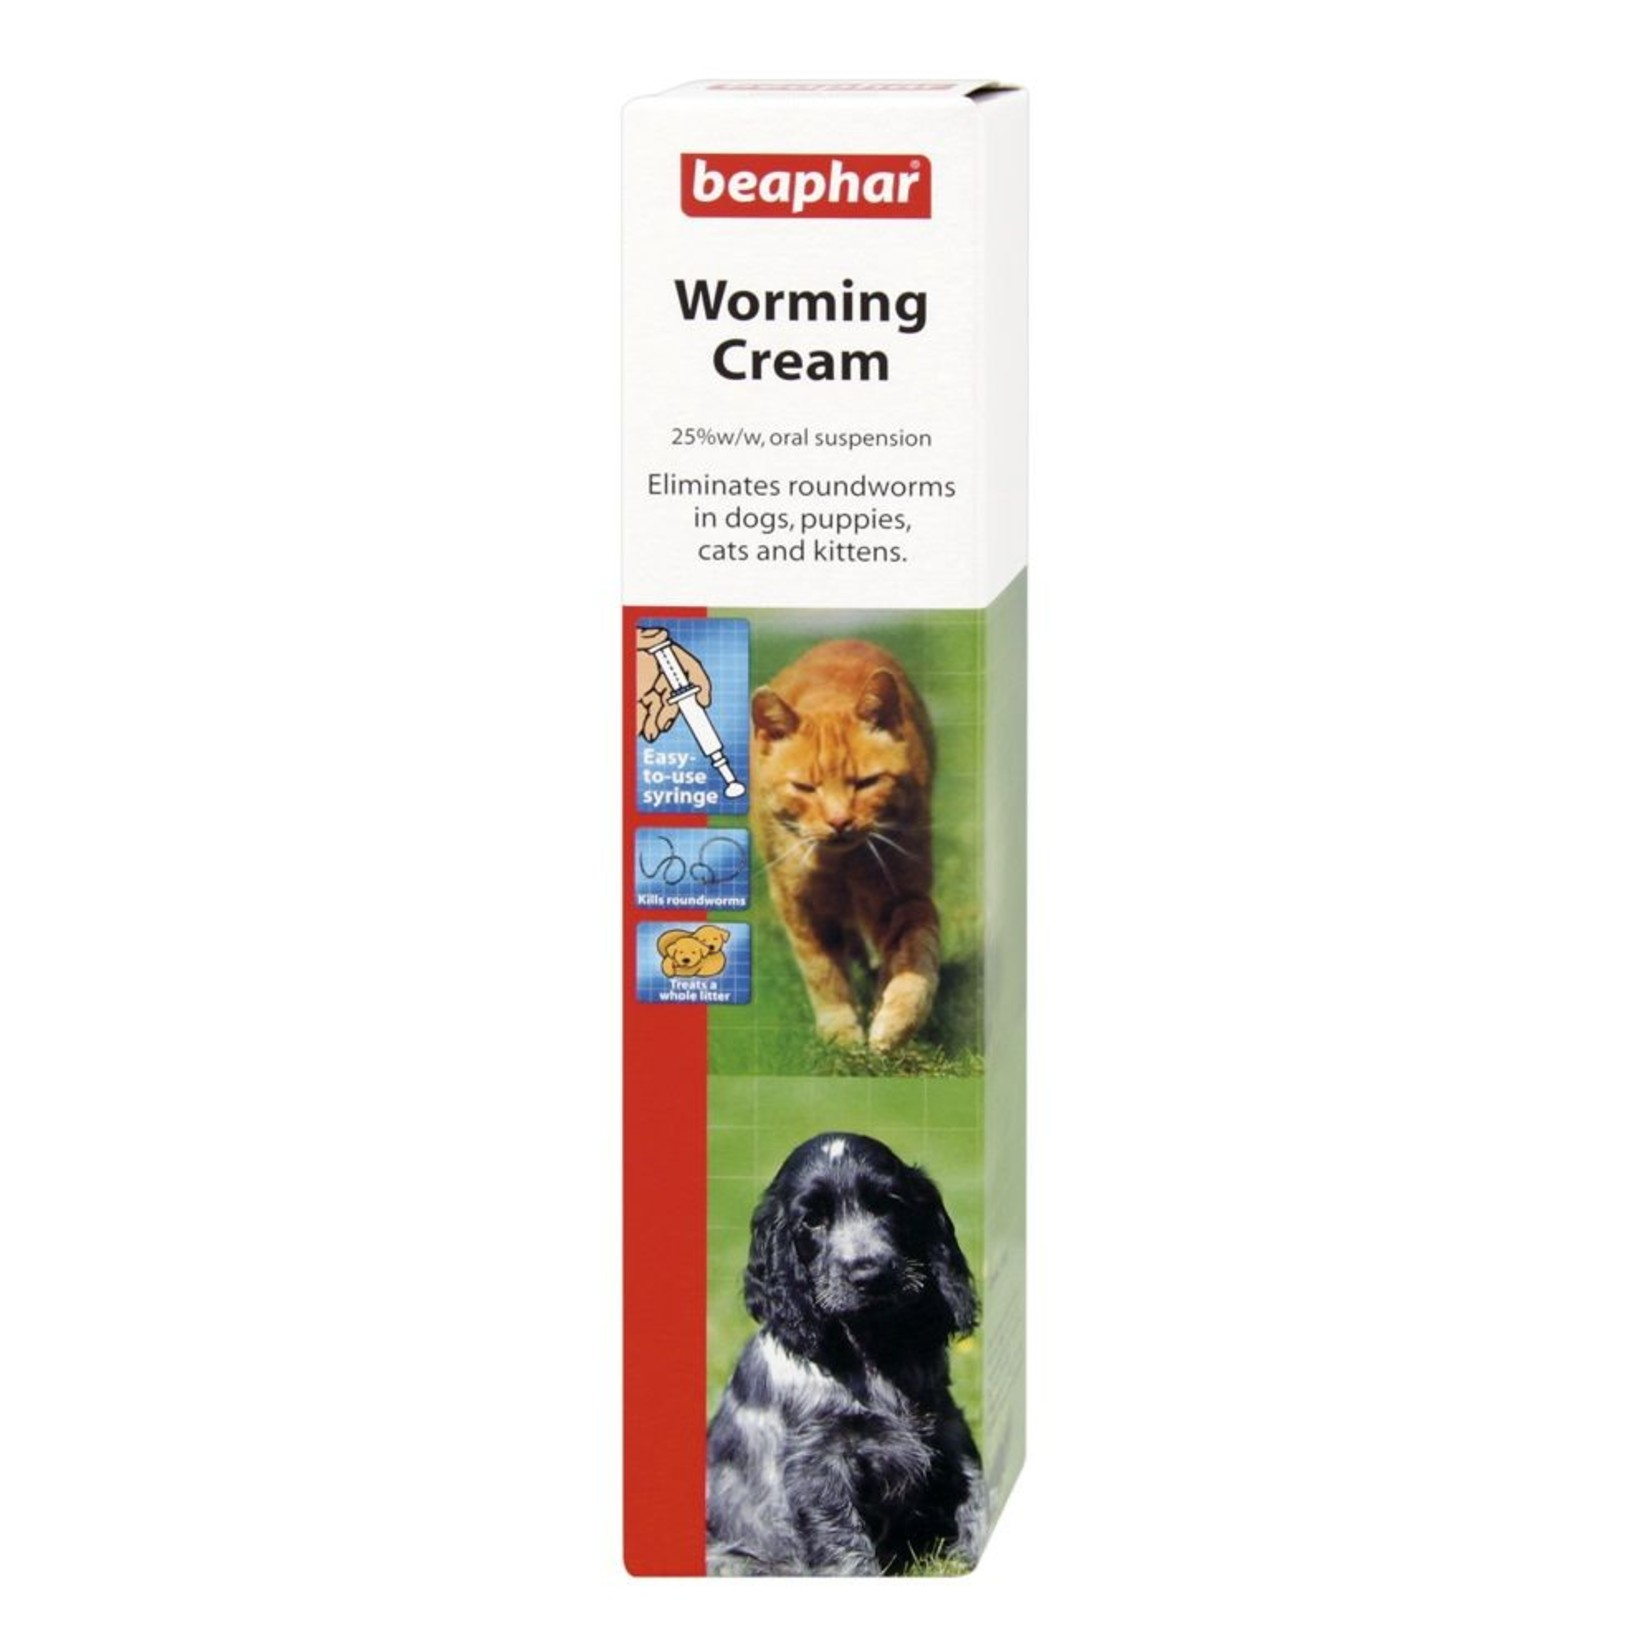 Beaphar Worming Cream for Dogs & Cats, 18g